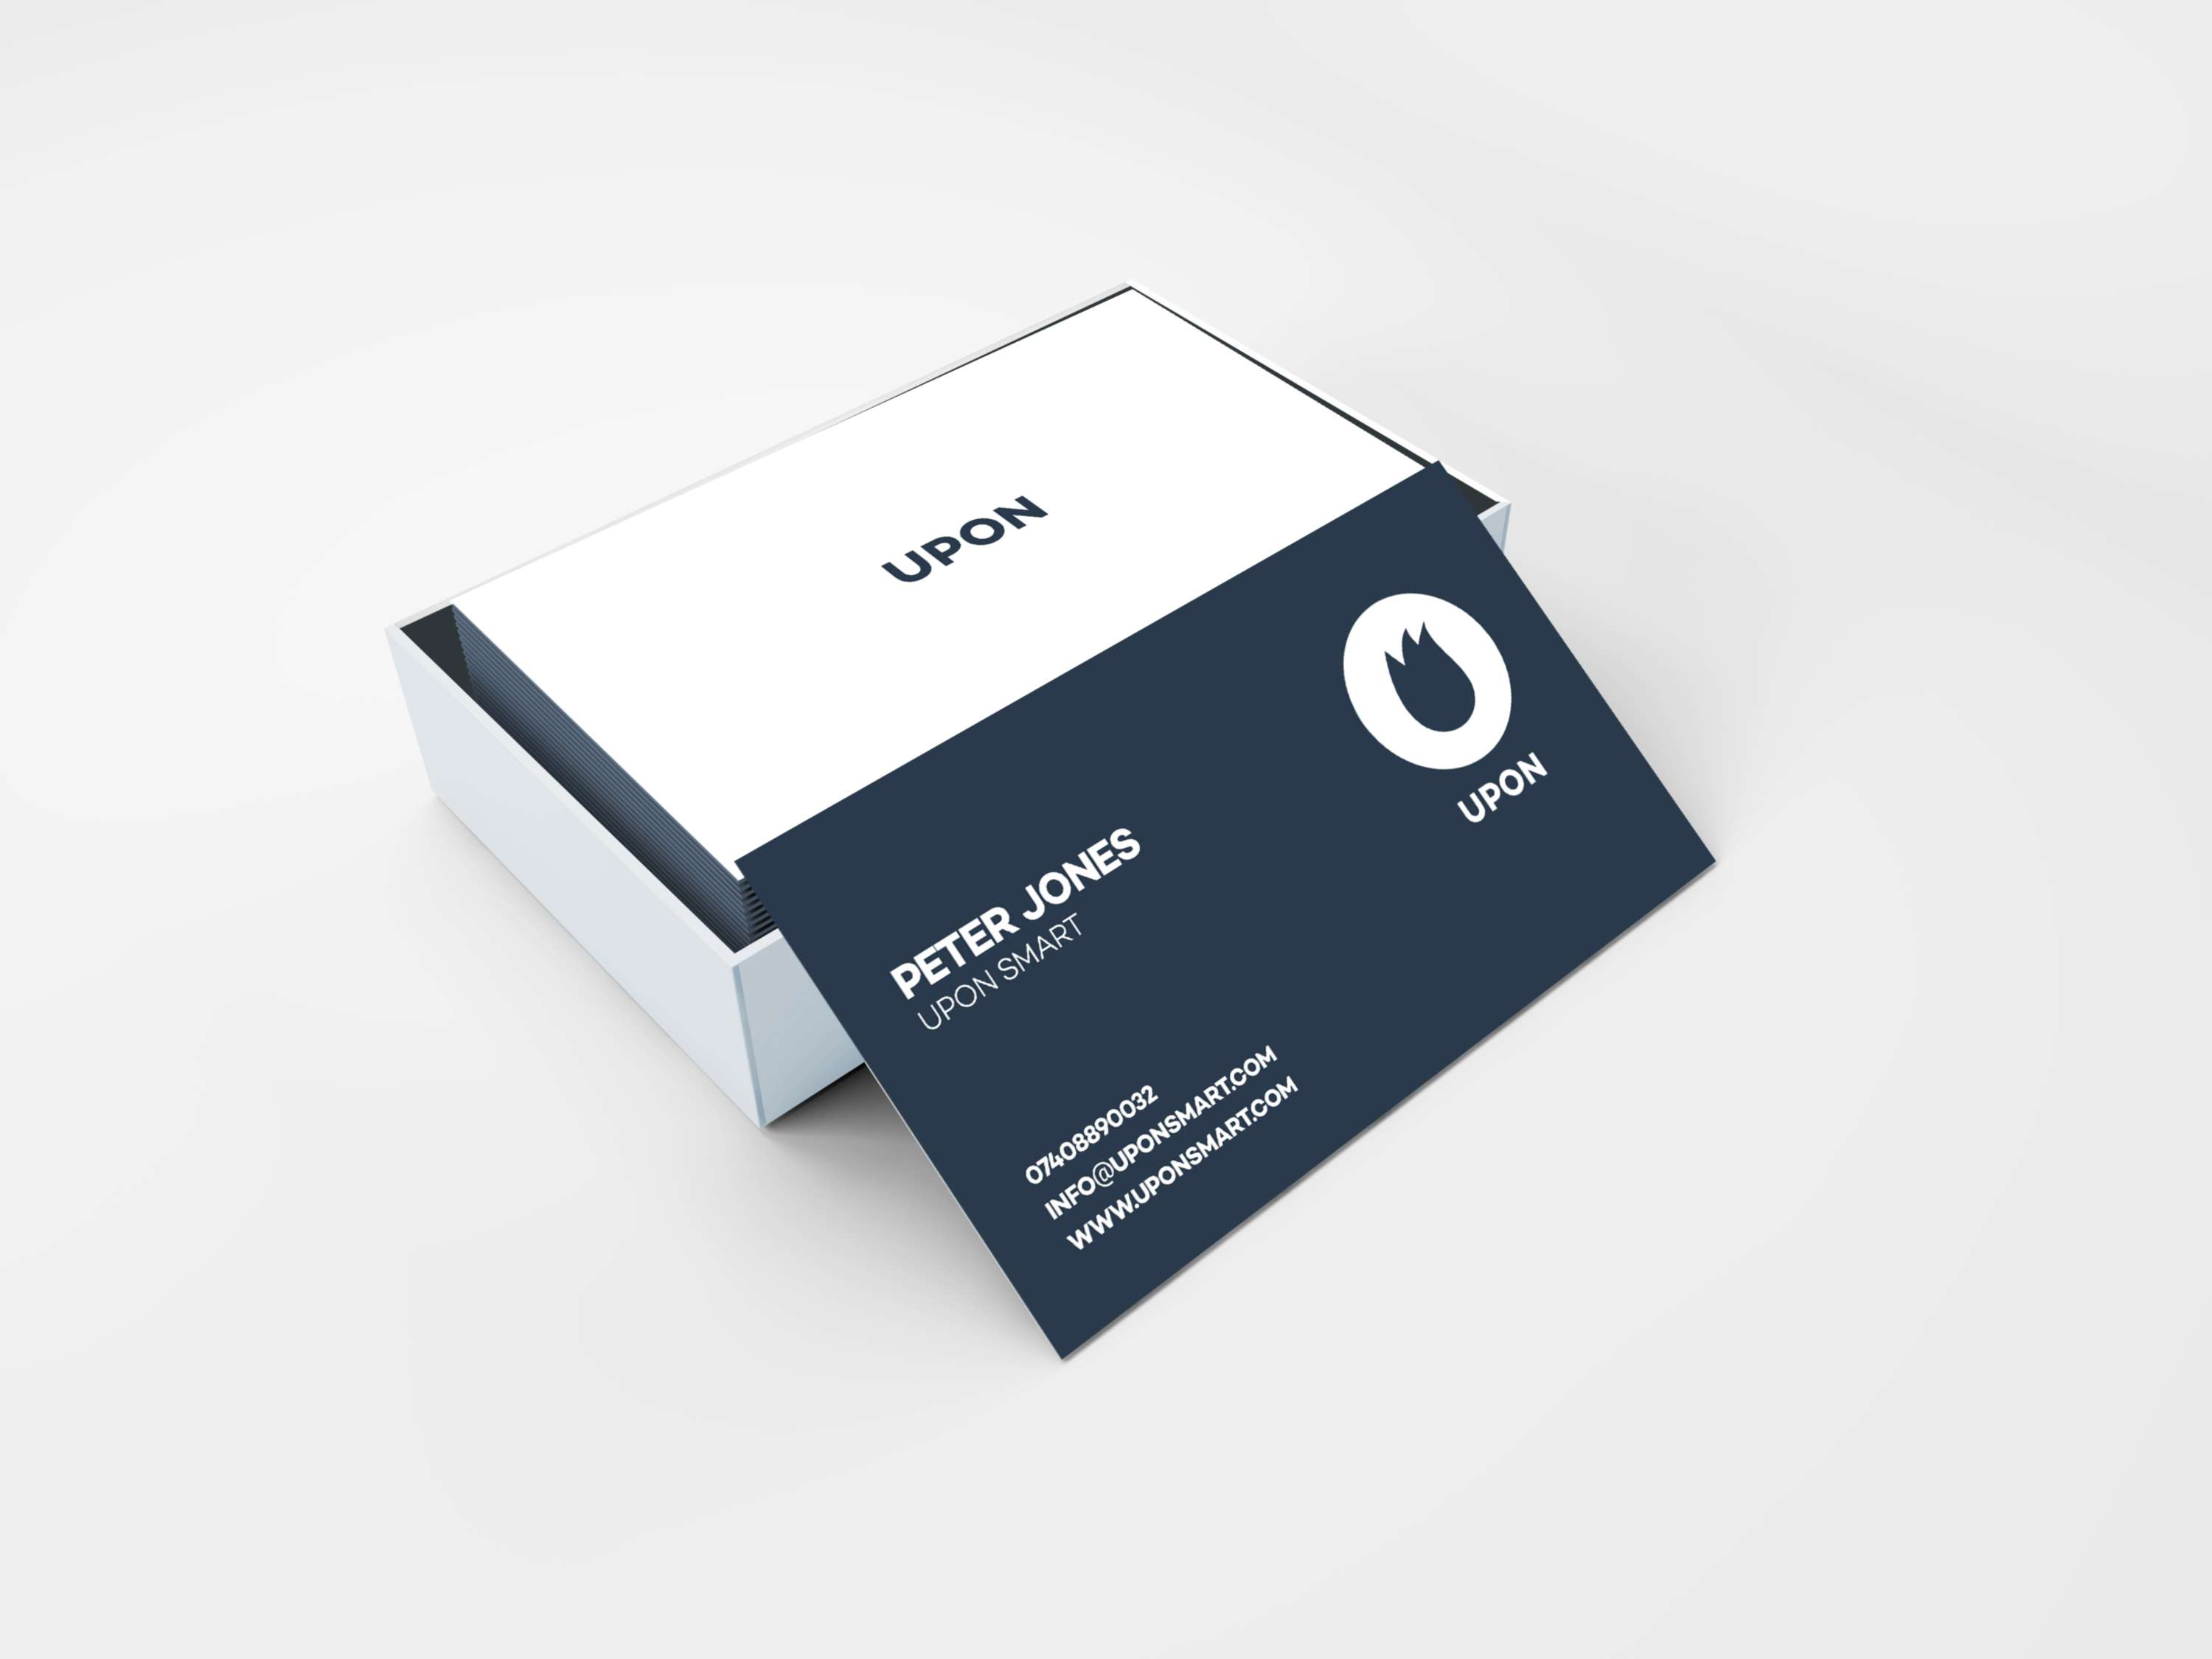 Best of photograph of pop out business cards business cards and upon smart from pop out business cards image source the dots magicingreecefo Gallery